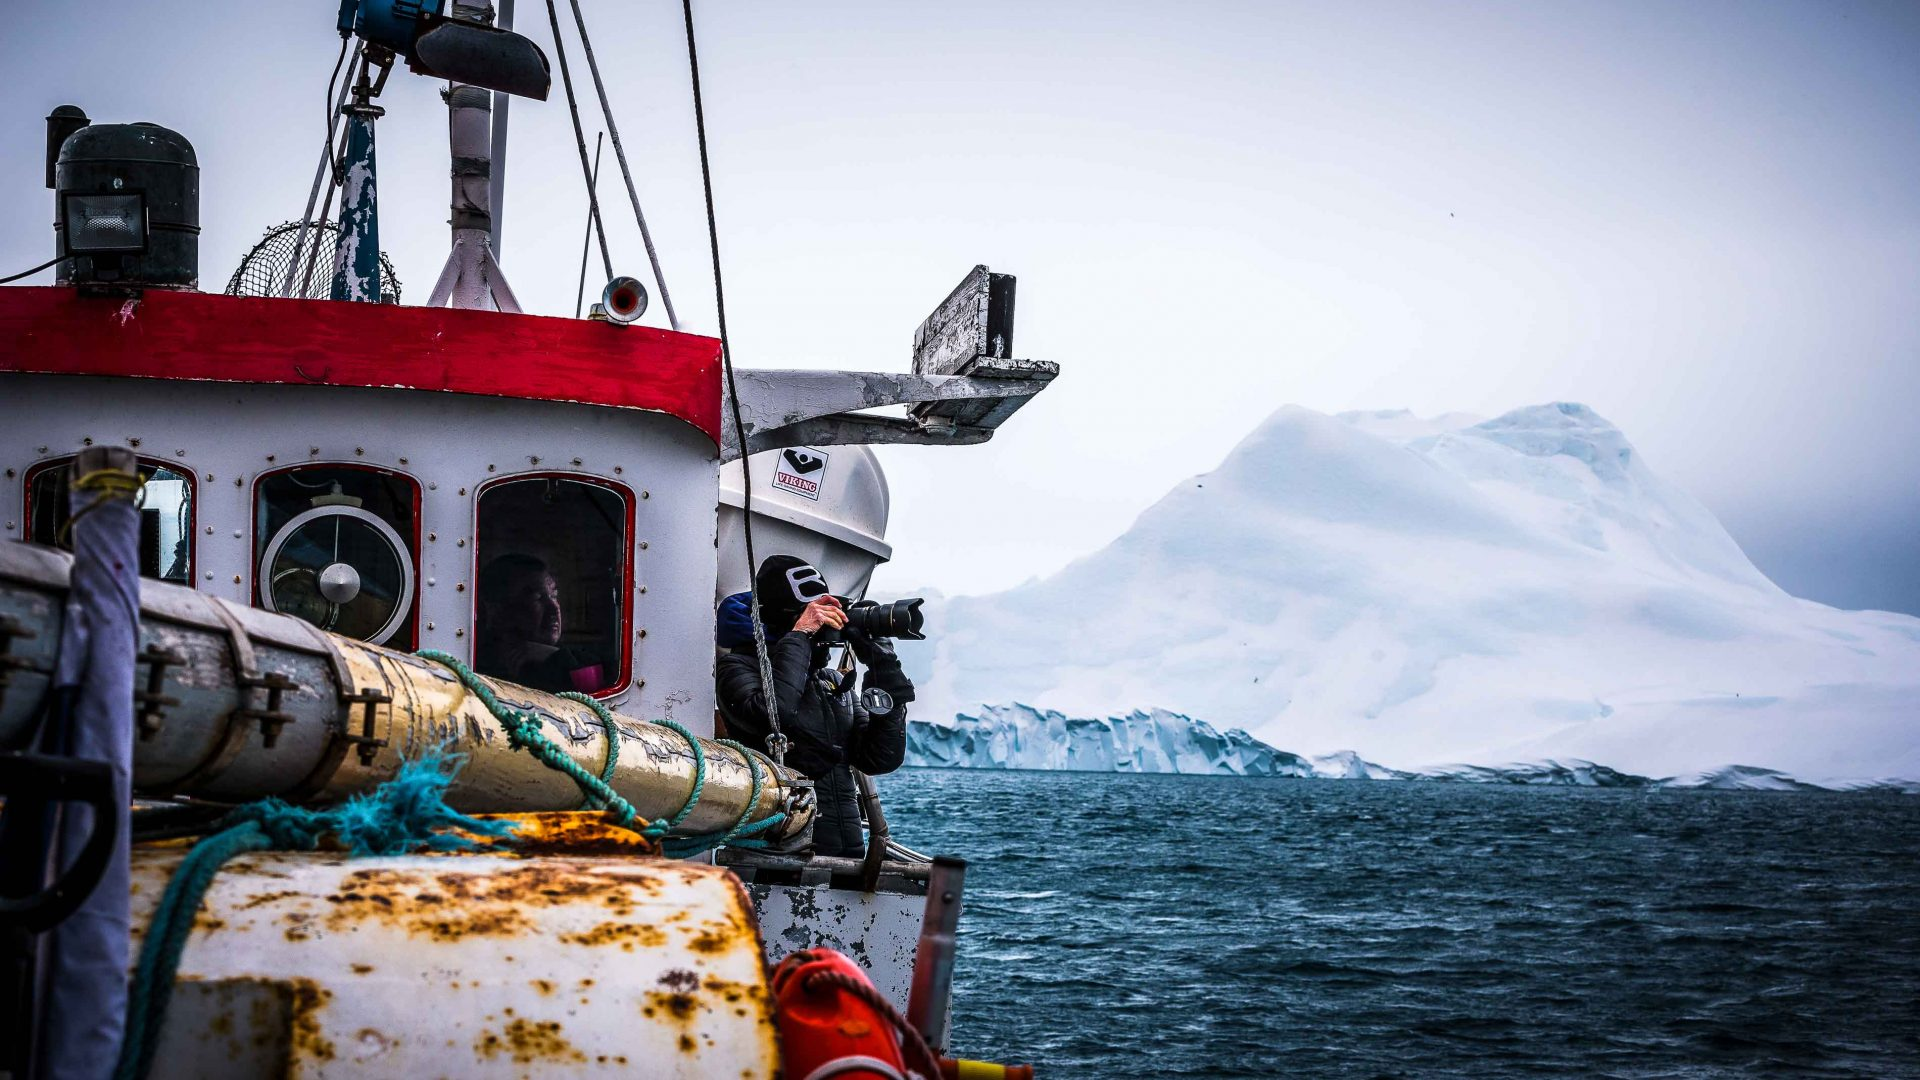 A photographer captures images of icebergs from the deck of a fishing boat as they float by in Ilulissat, Greenland.